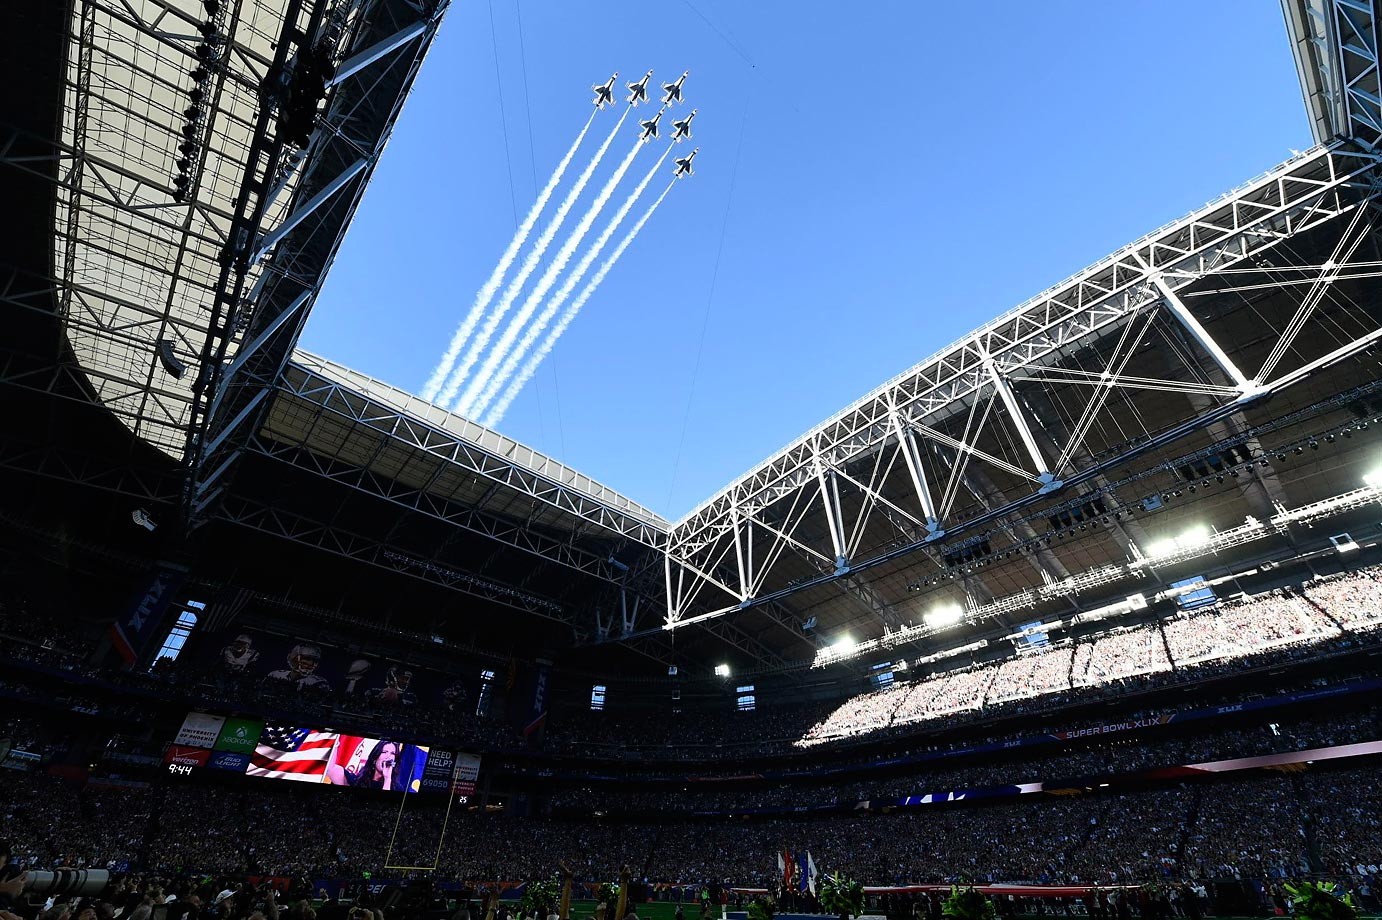 The flyover at the start of the game.